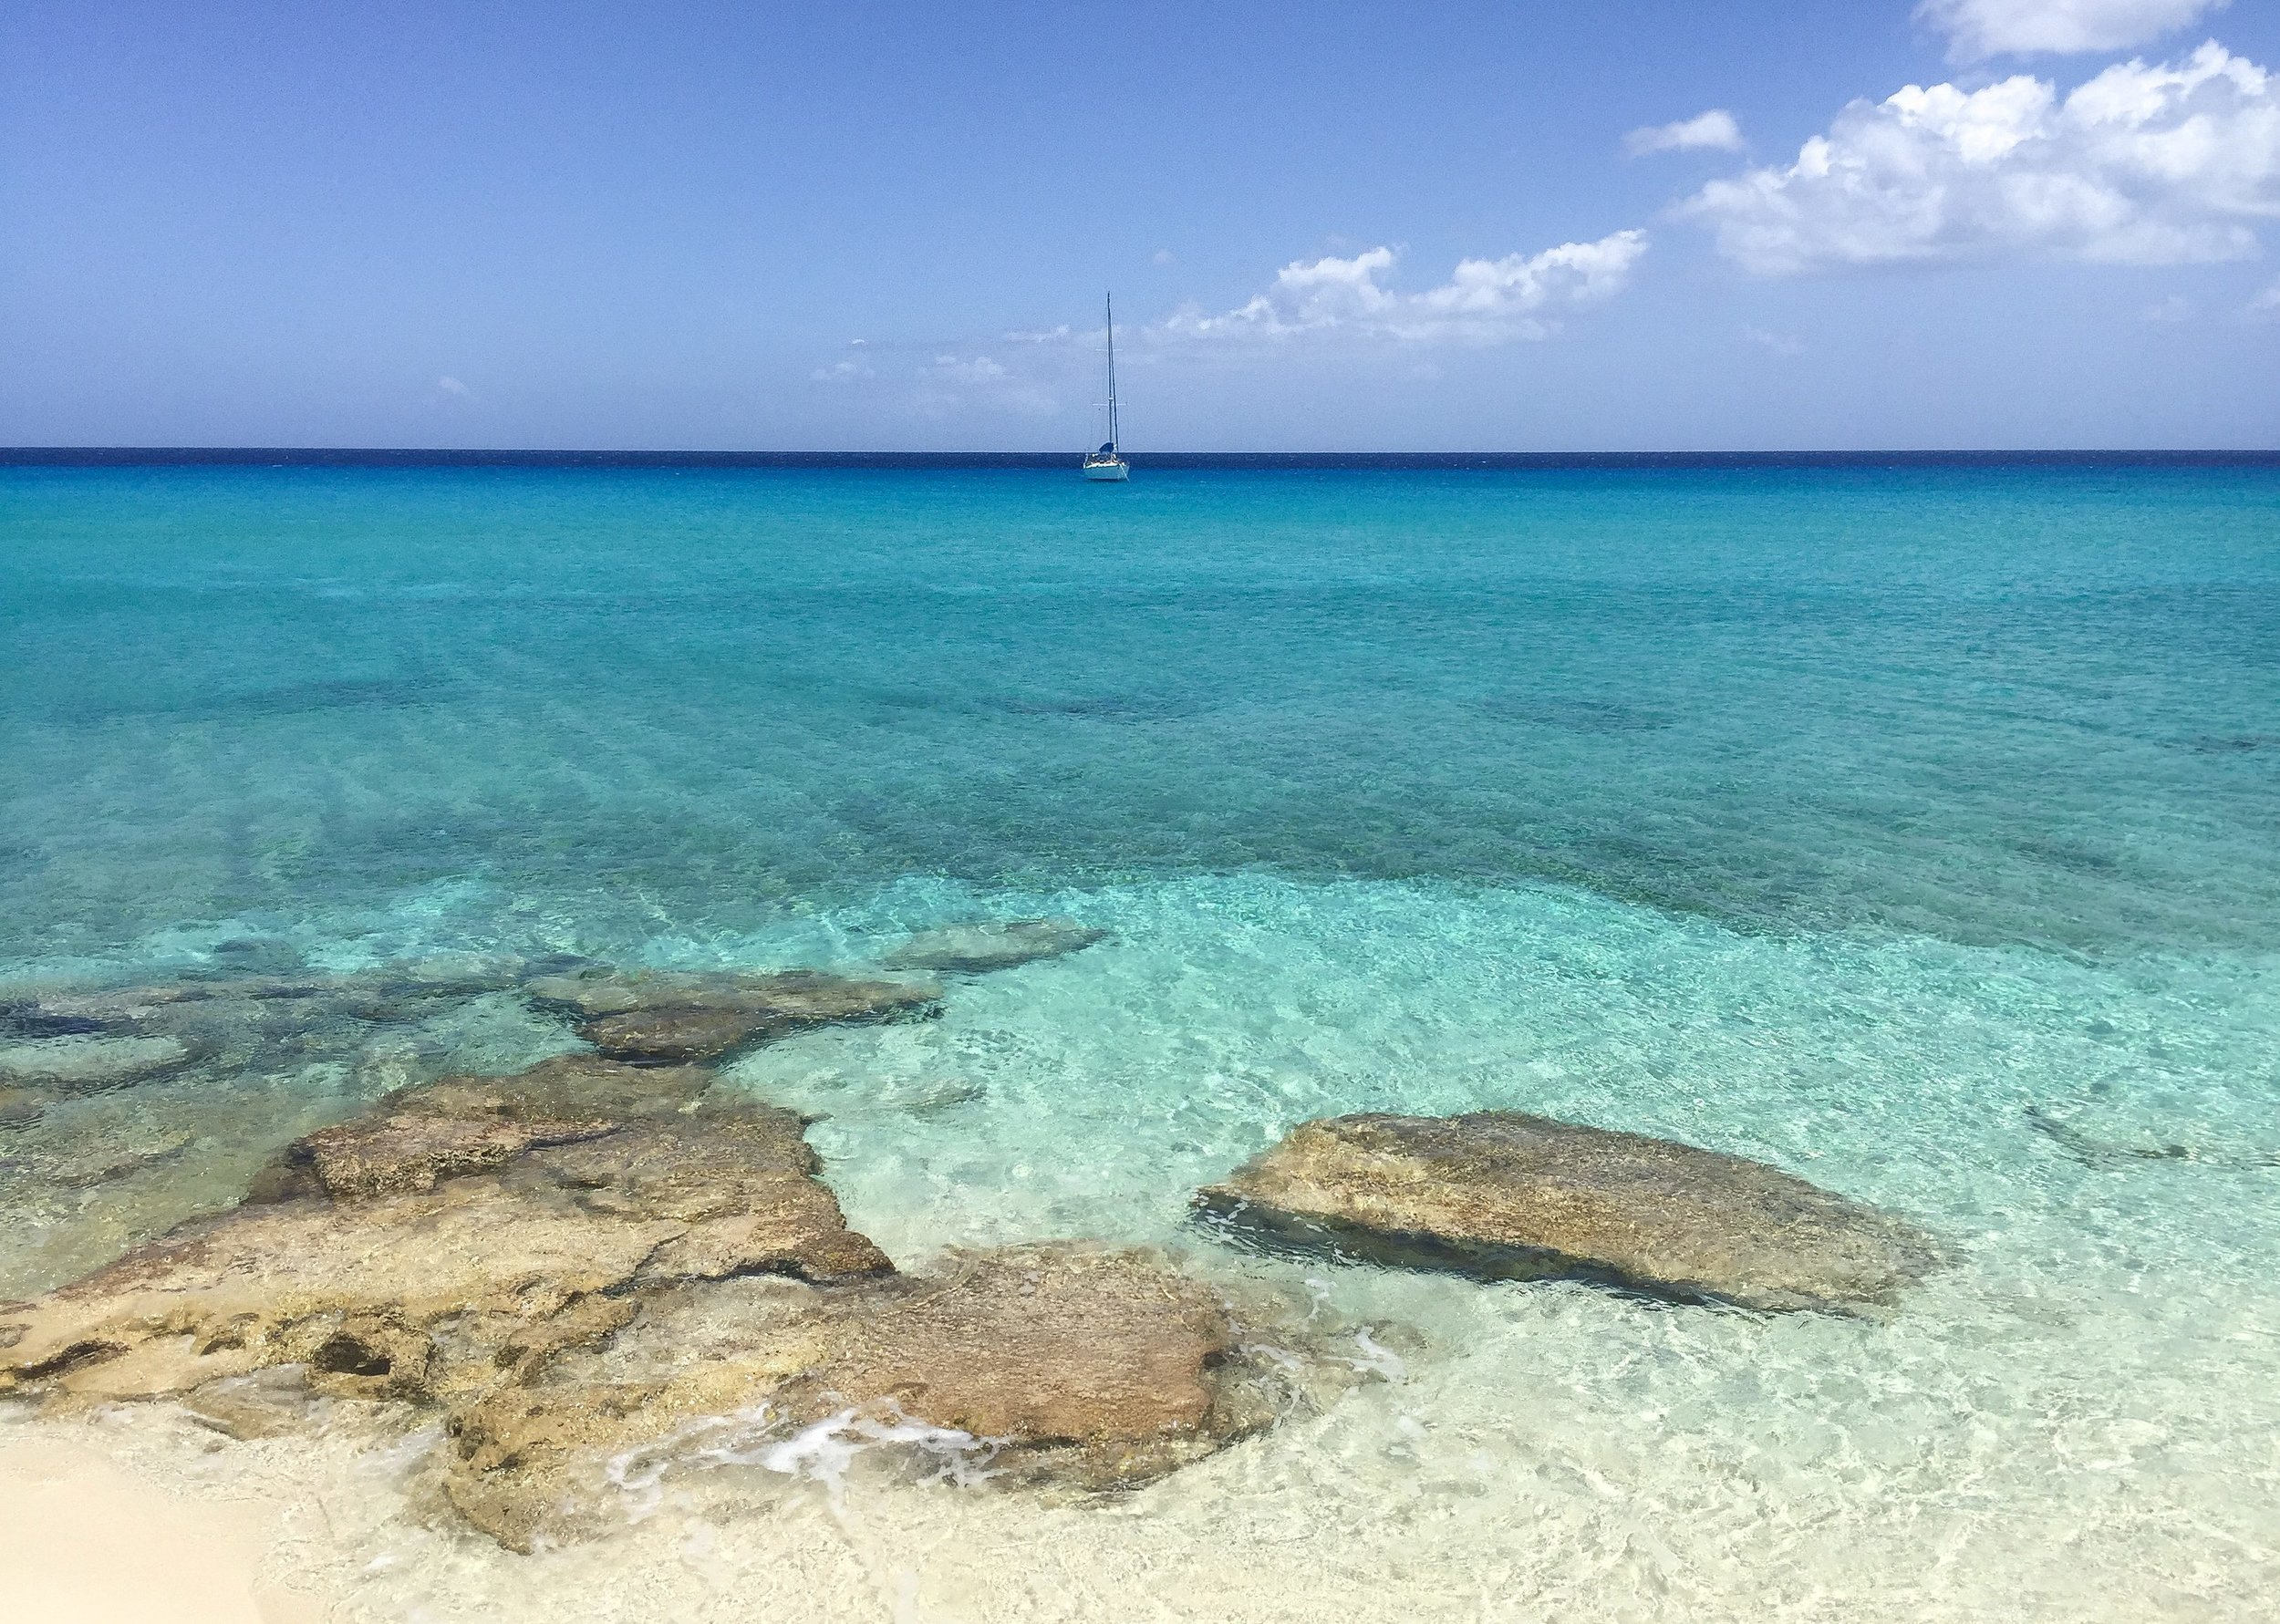 Our first view of Juniper at anchor in the Bahamas. Look at that water!